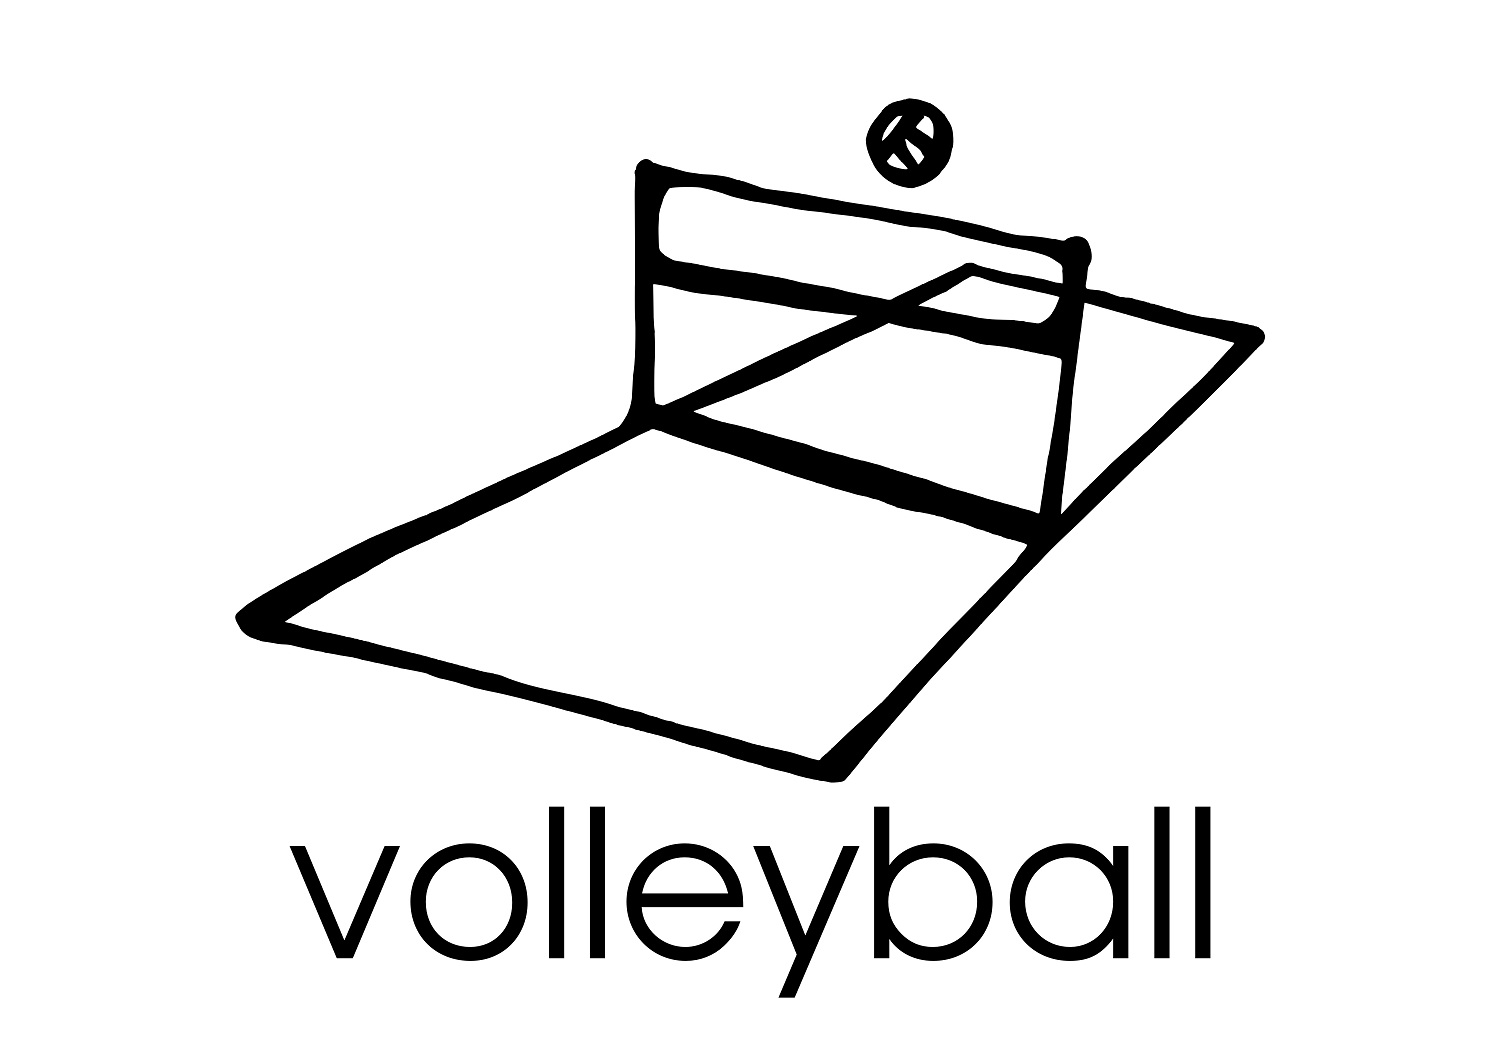 Image #17657 - Coloriage volleyball gratuit